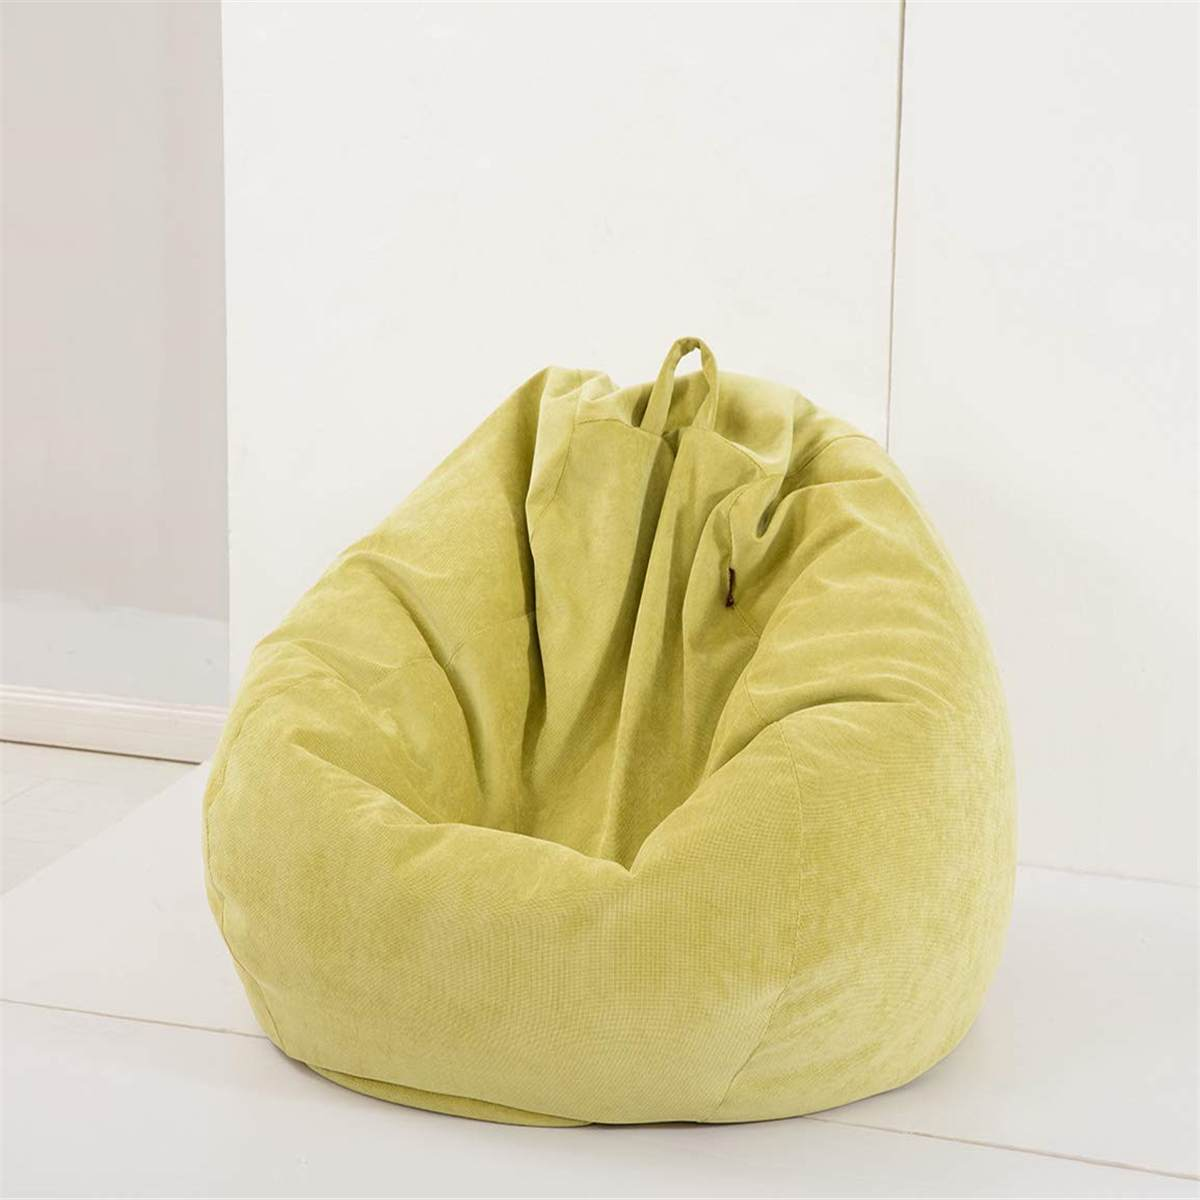 Cover Seat-Bean-Bag Lounger Inner-Liner Pouf-Puff Lazy-Sofas Living-Room Couch Tatami title=